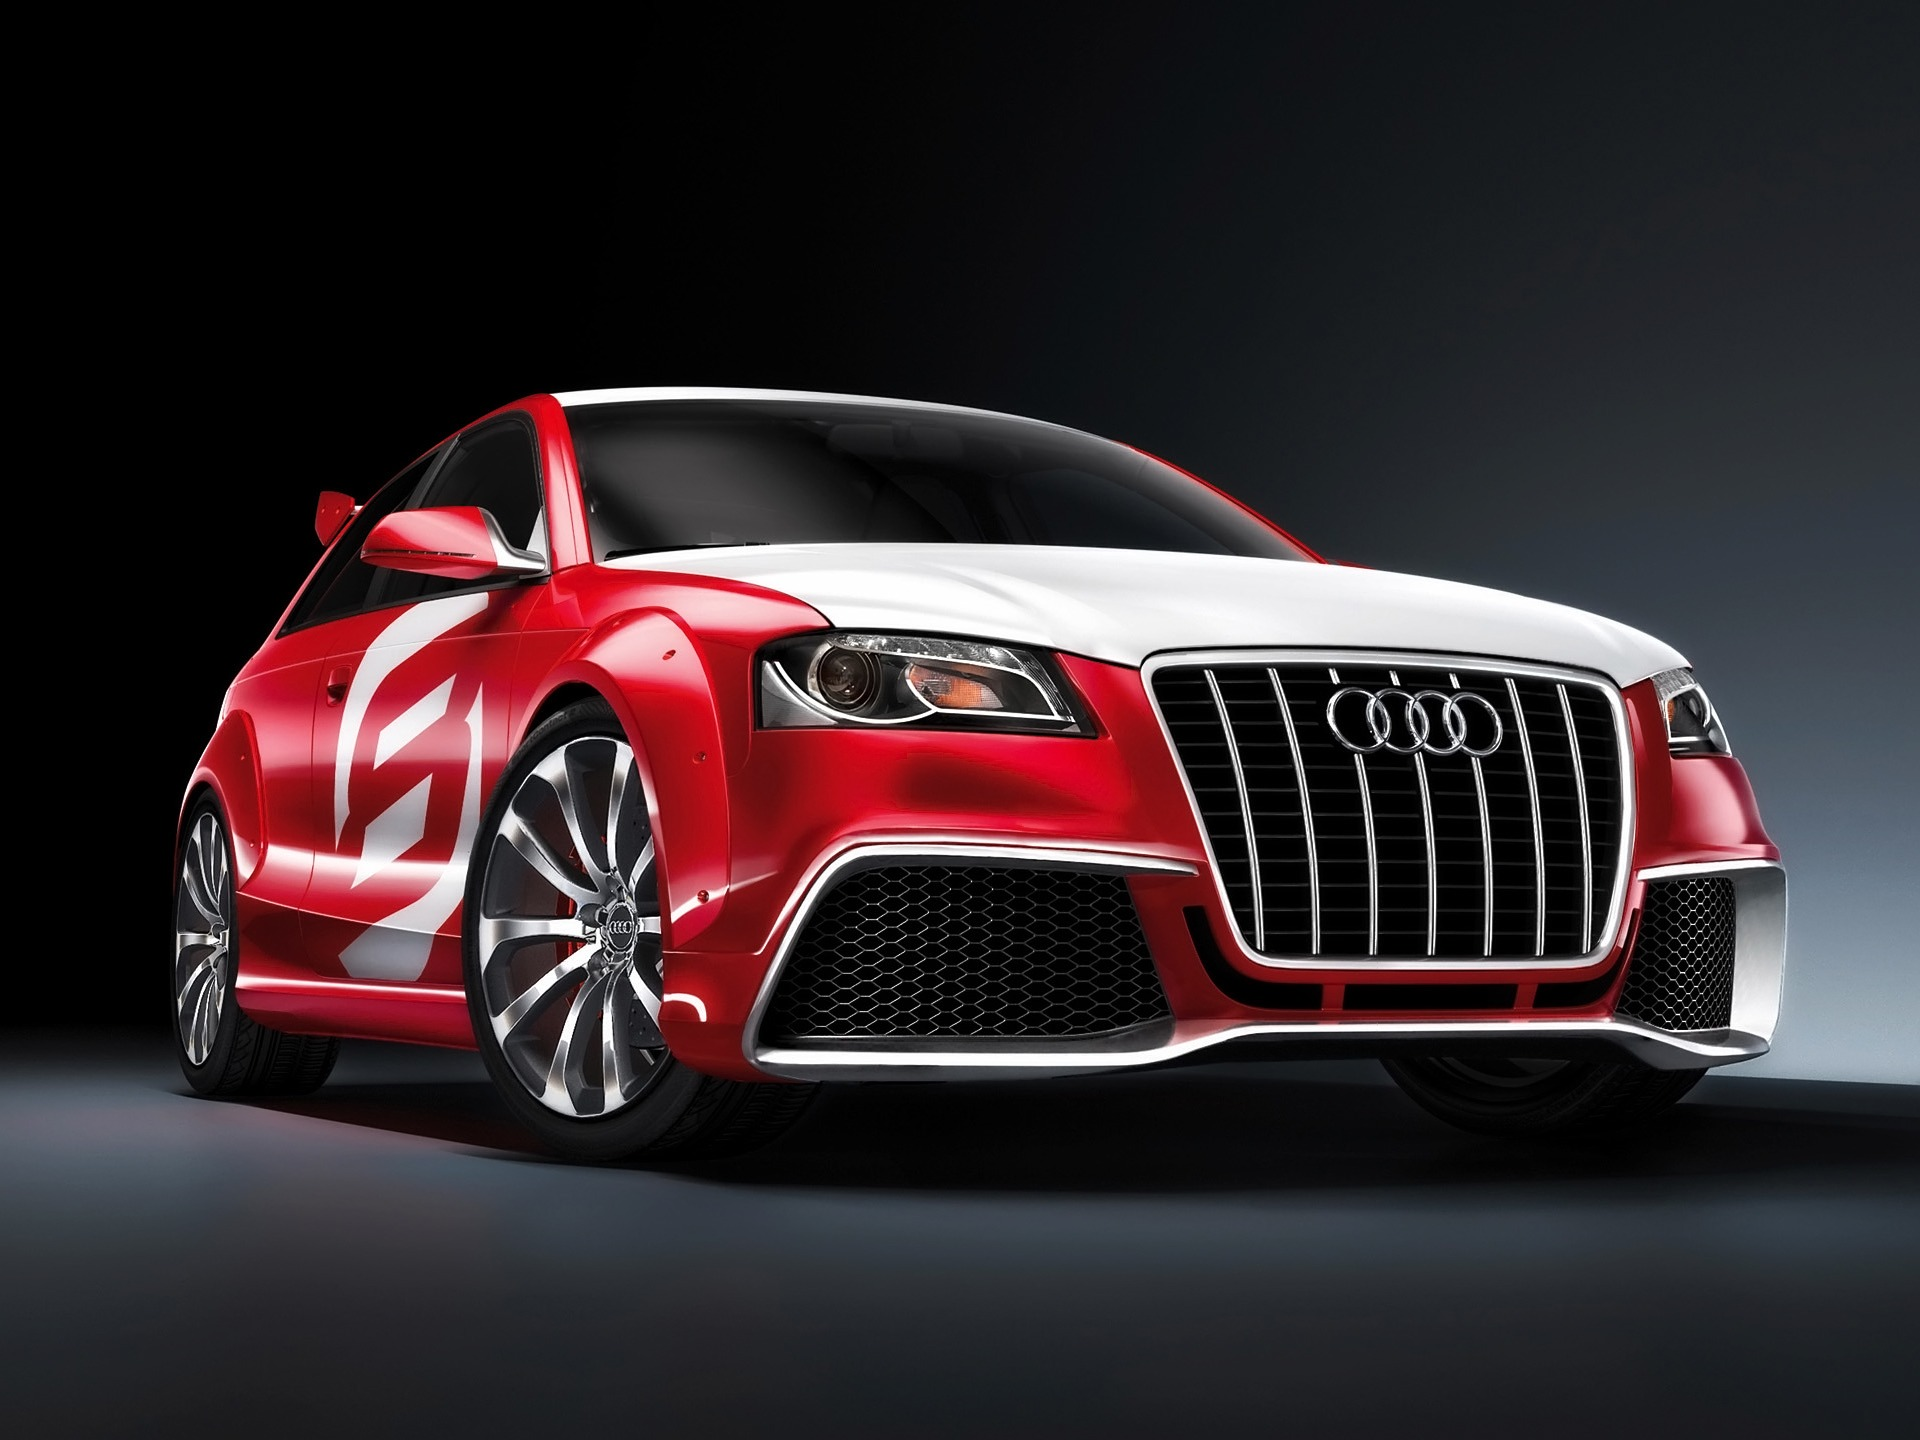 Audi A3 Clubsport Quattro Wallpaper Audi Cars Wallpapers